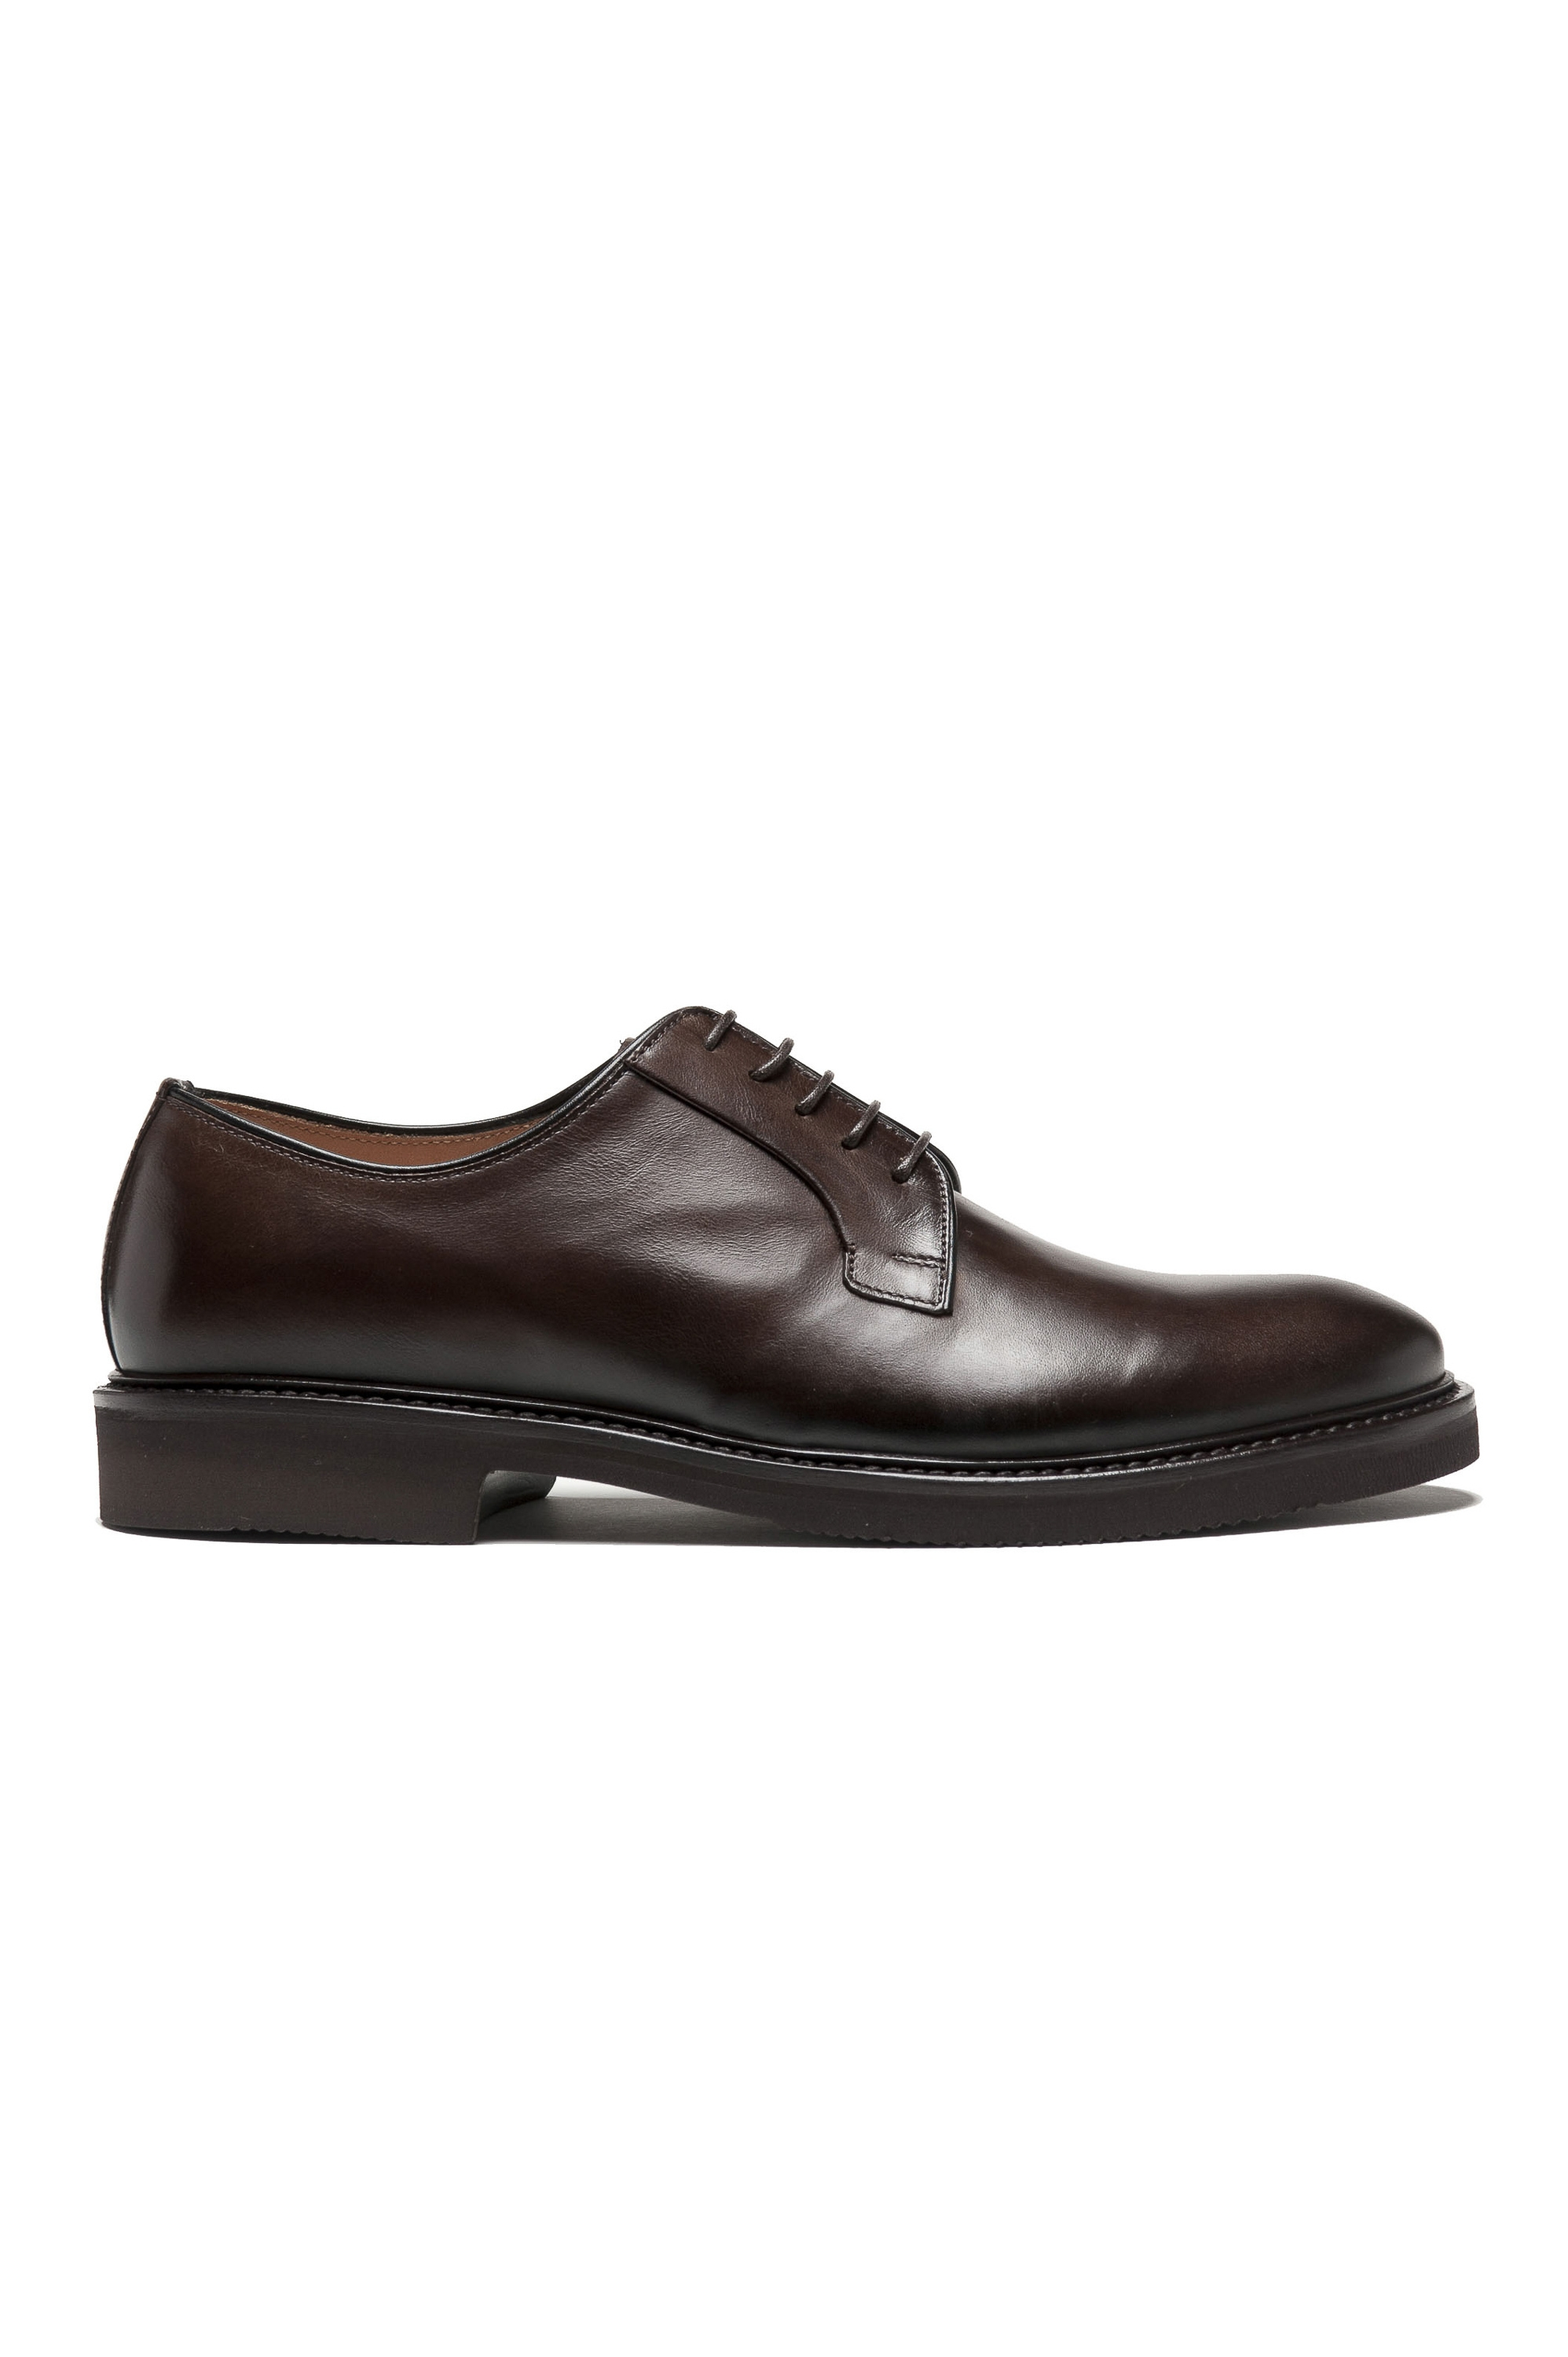 SBU 01500 Brown lace-up plain calfskin derbies with Vibram rubber sole 01